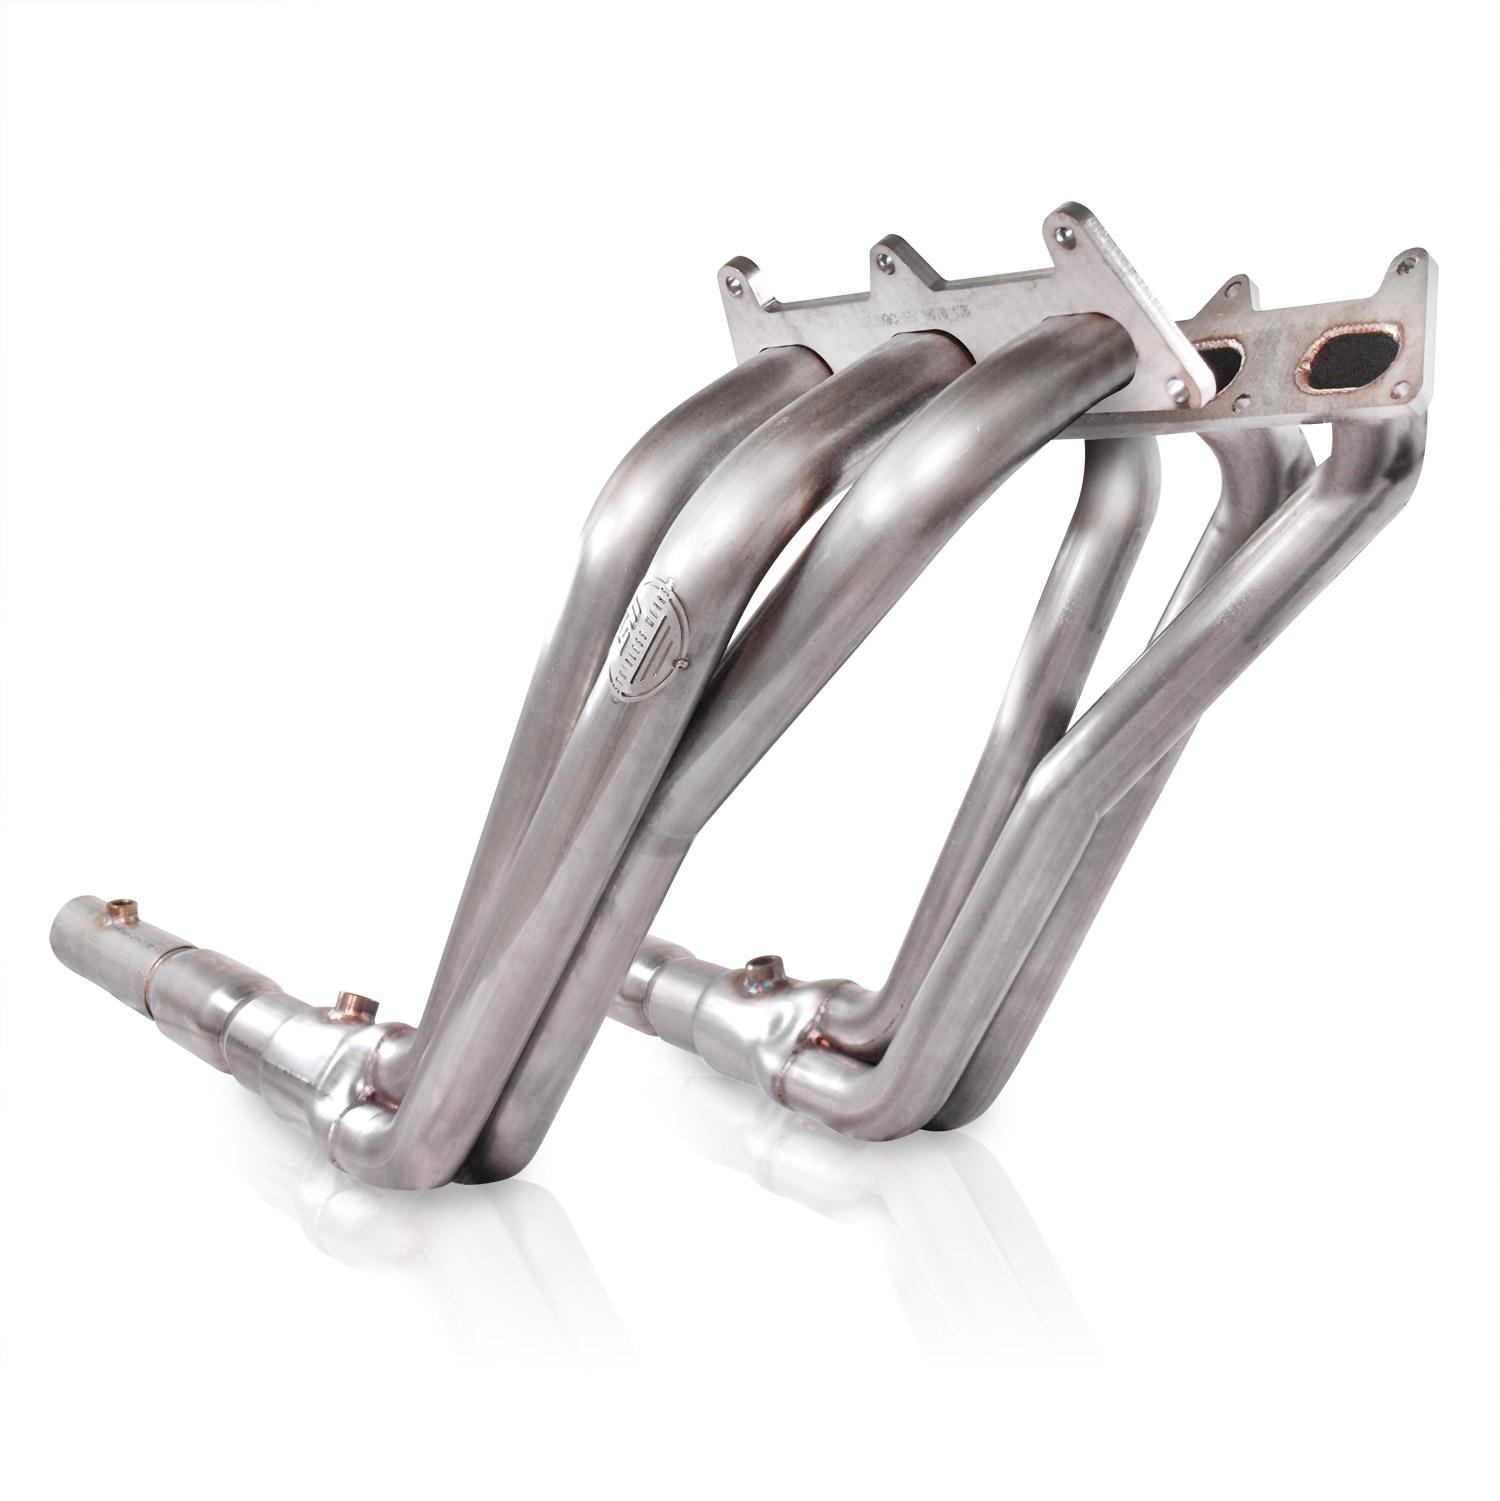 "2010+ Camaro V6 Stainless Works Long Tube 1-5/8"" Primaries w/Highflow Cats"